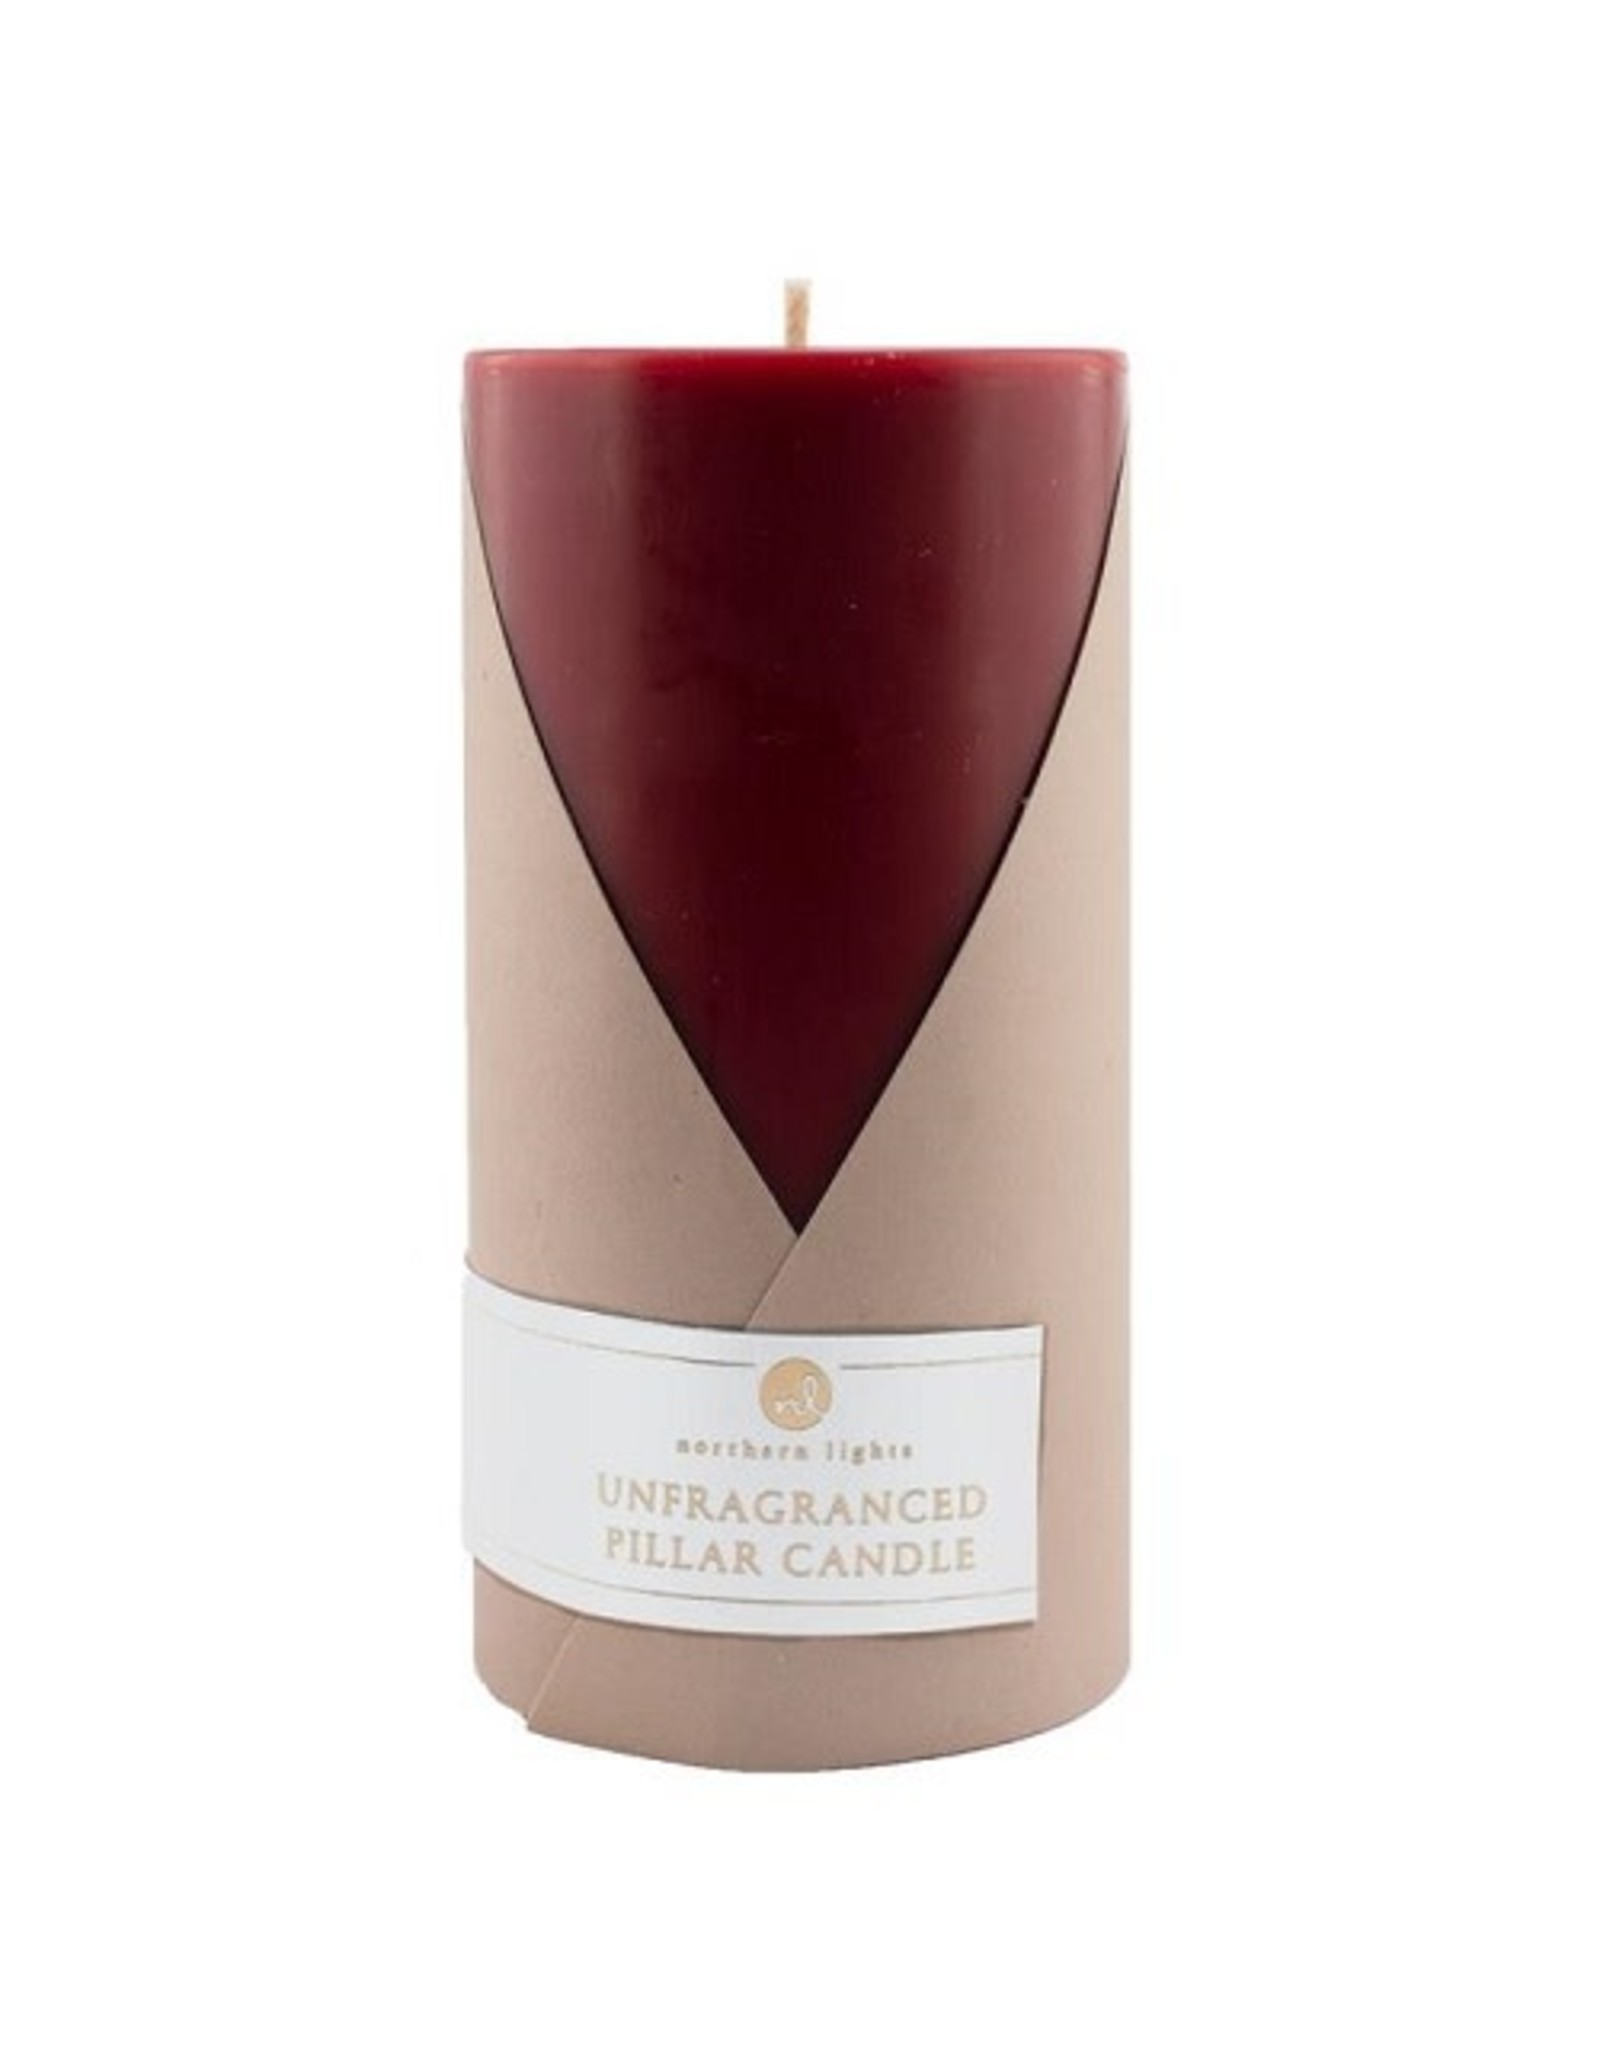 Northern Lights Candles 3X6 UNFRAGRANCED PILLAR CANDLE